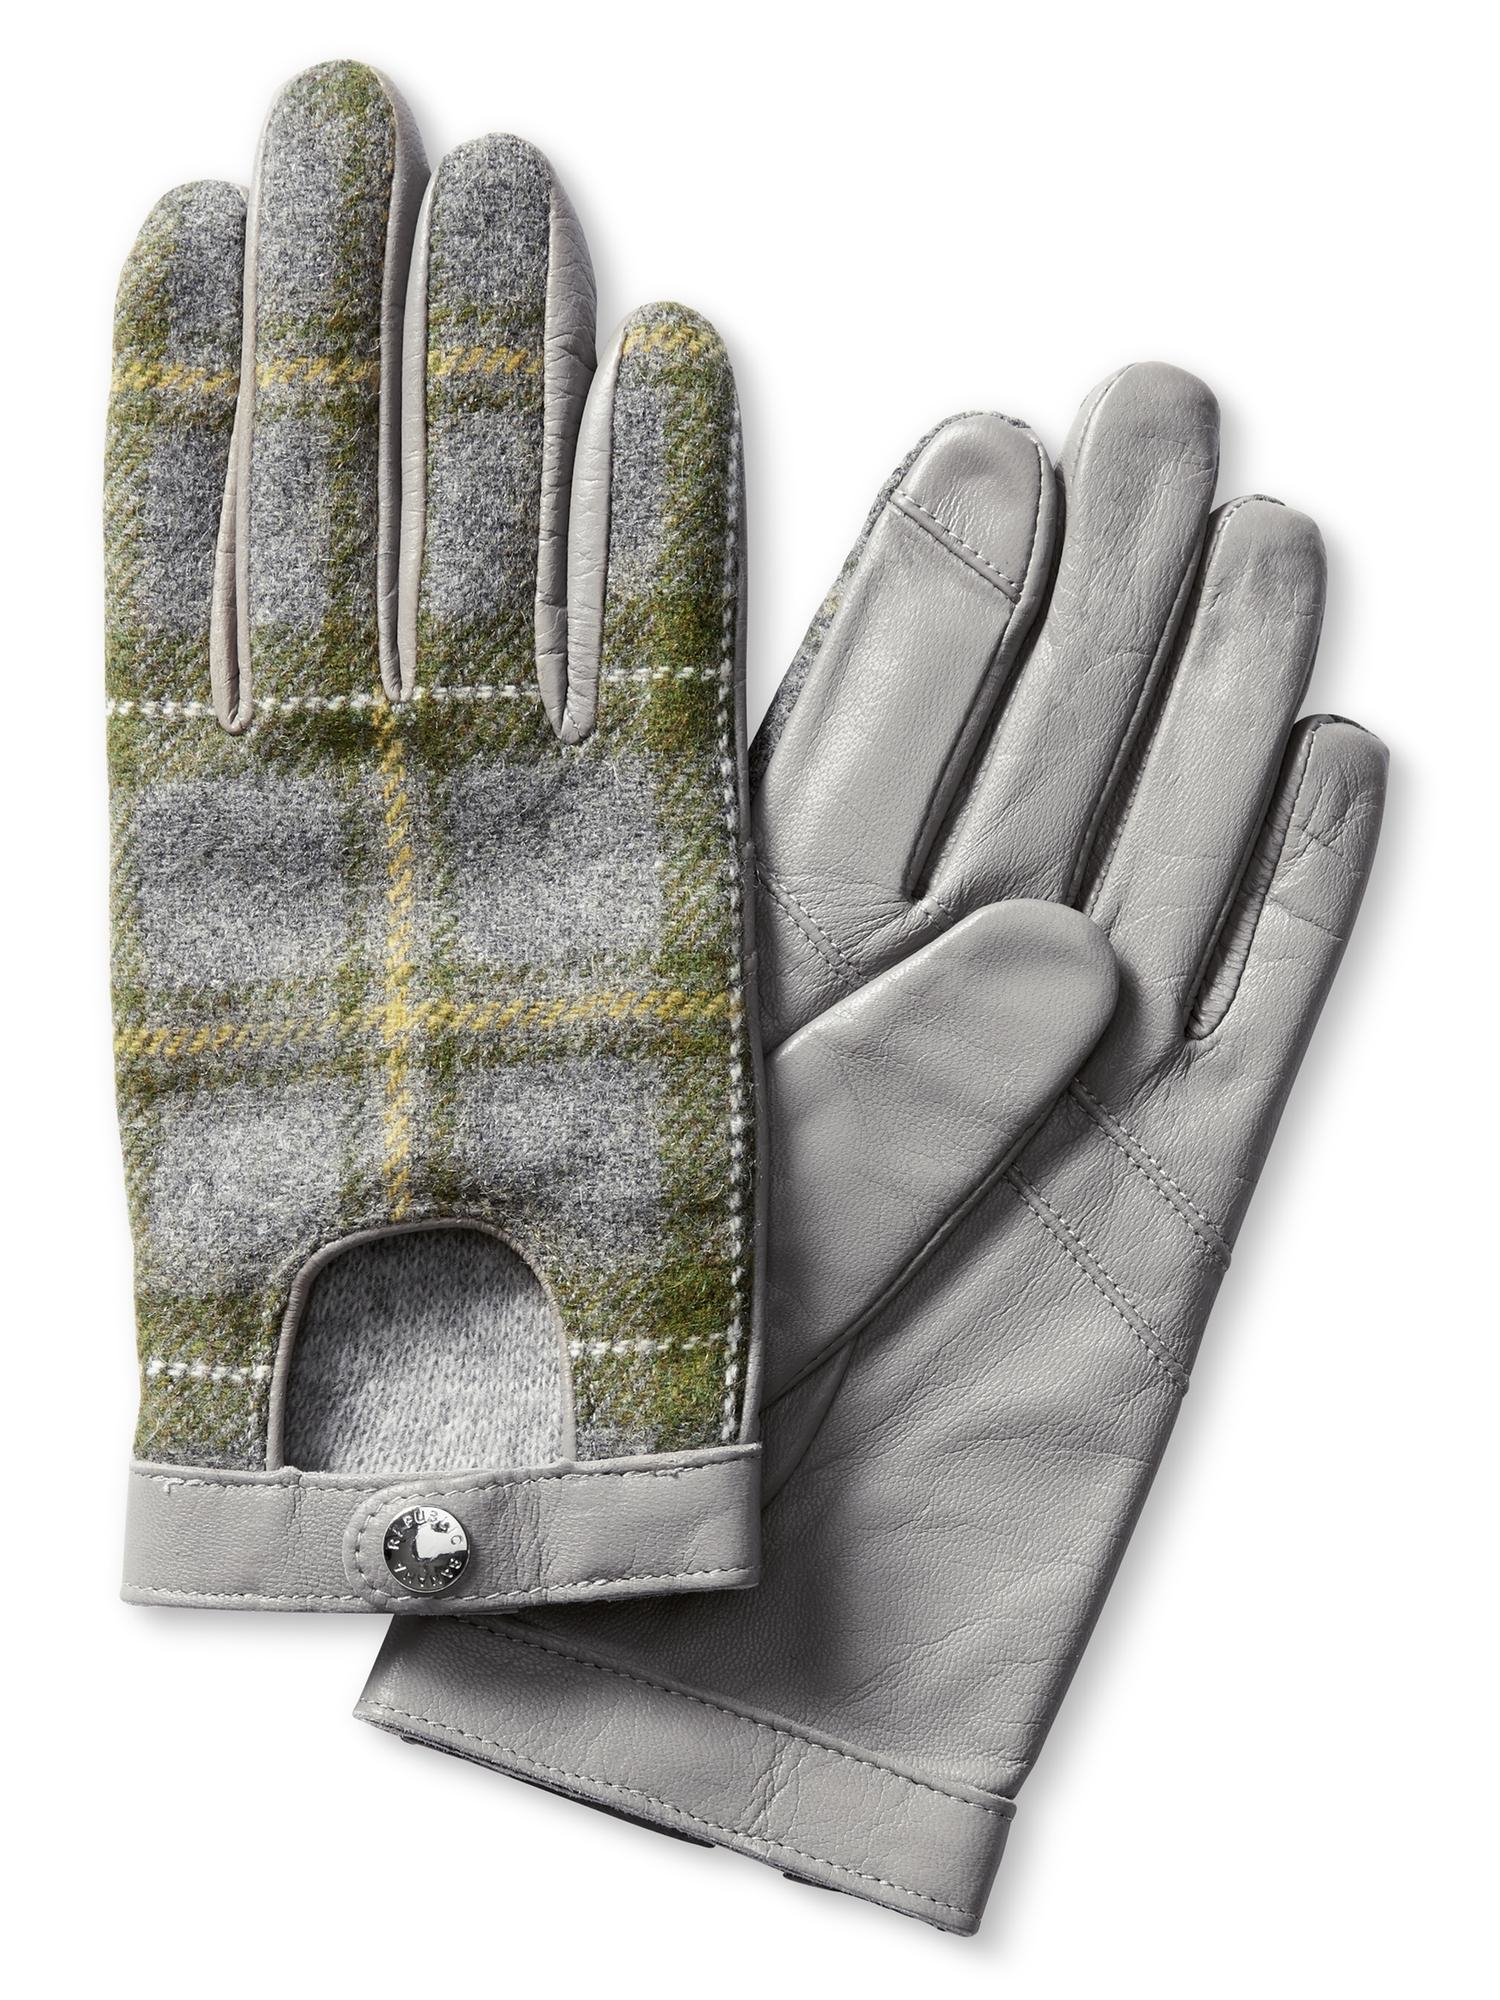 Discover the latest edit of stylish men's gloves at Banana Republic that seamlessly complement a range of looks for work and play. Quintessential Warm Accessories that Exude Discerning Taste. Distinctive style and functional warmth converge in this signature selection of tailored gloves for men.